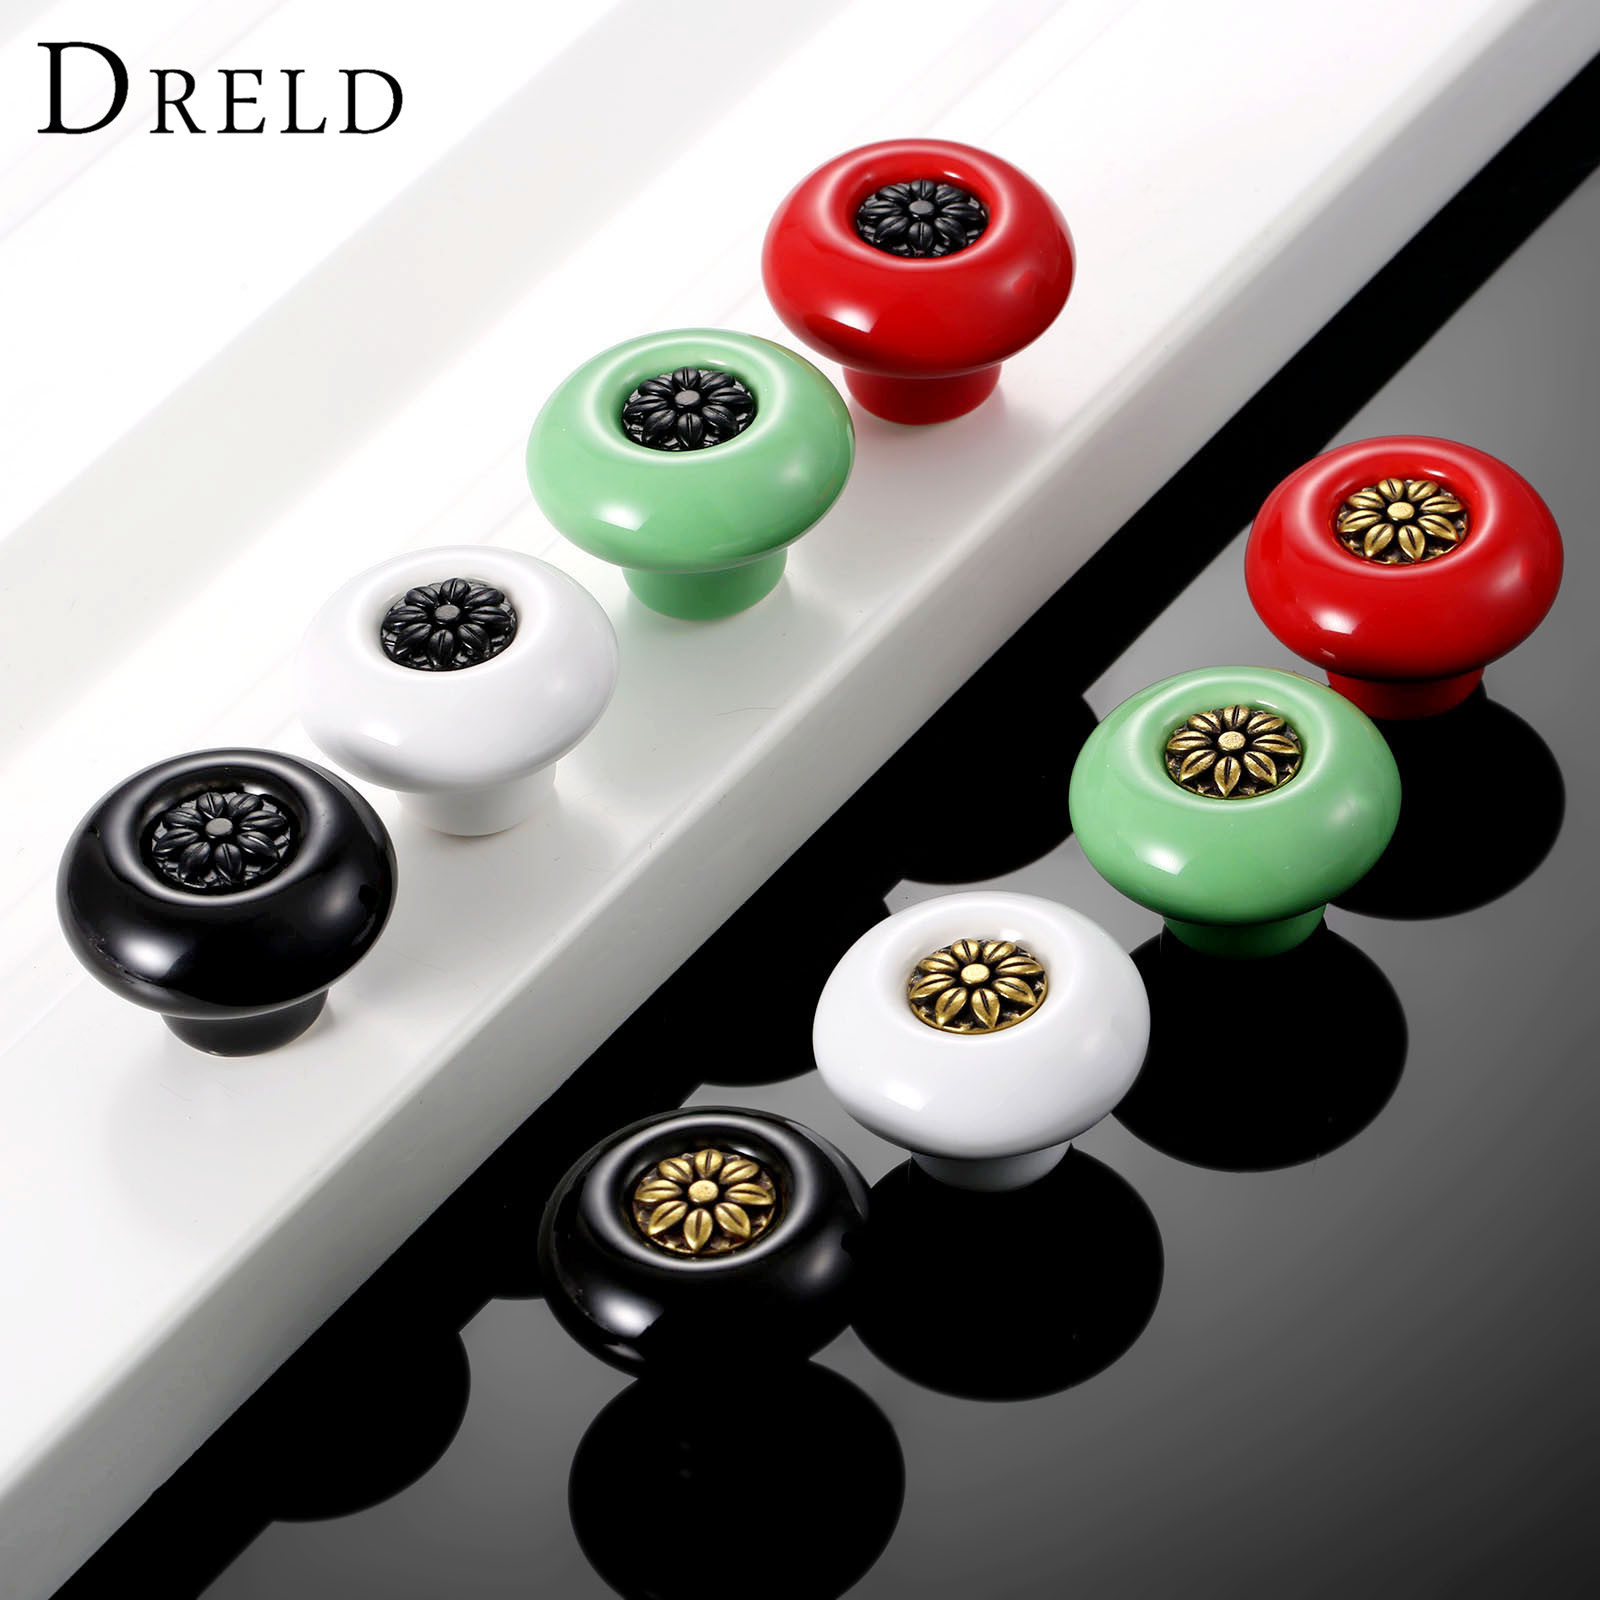 DRELD Vintage Furniture Handle Ceramic Door Knob Cupboard Drawer Cabinet Knobs and Handle kitchen Pull Handle Furniture Hardware 8pcs vintage dot round ceramics drawer knob door cabinet kitchen pull handle furniture hardware handle decoration j2y